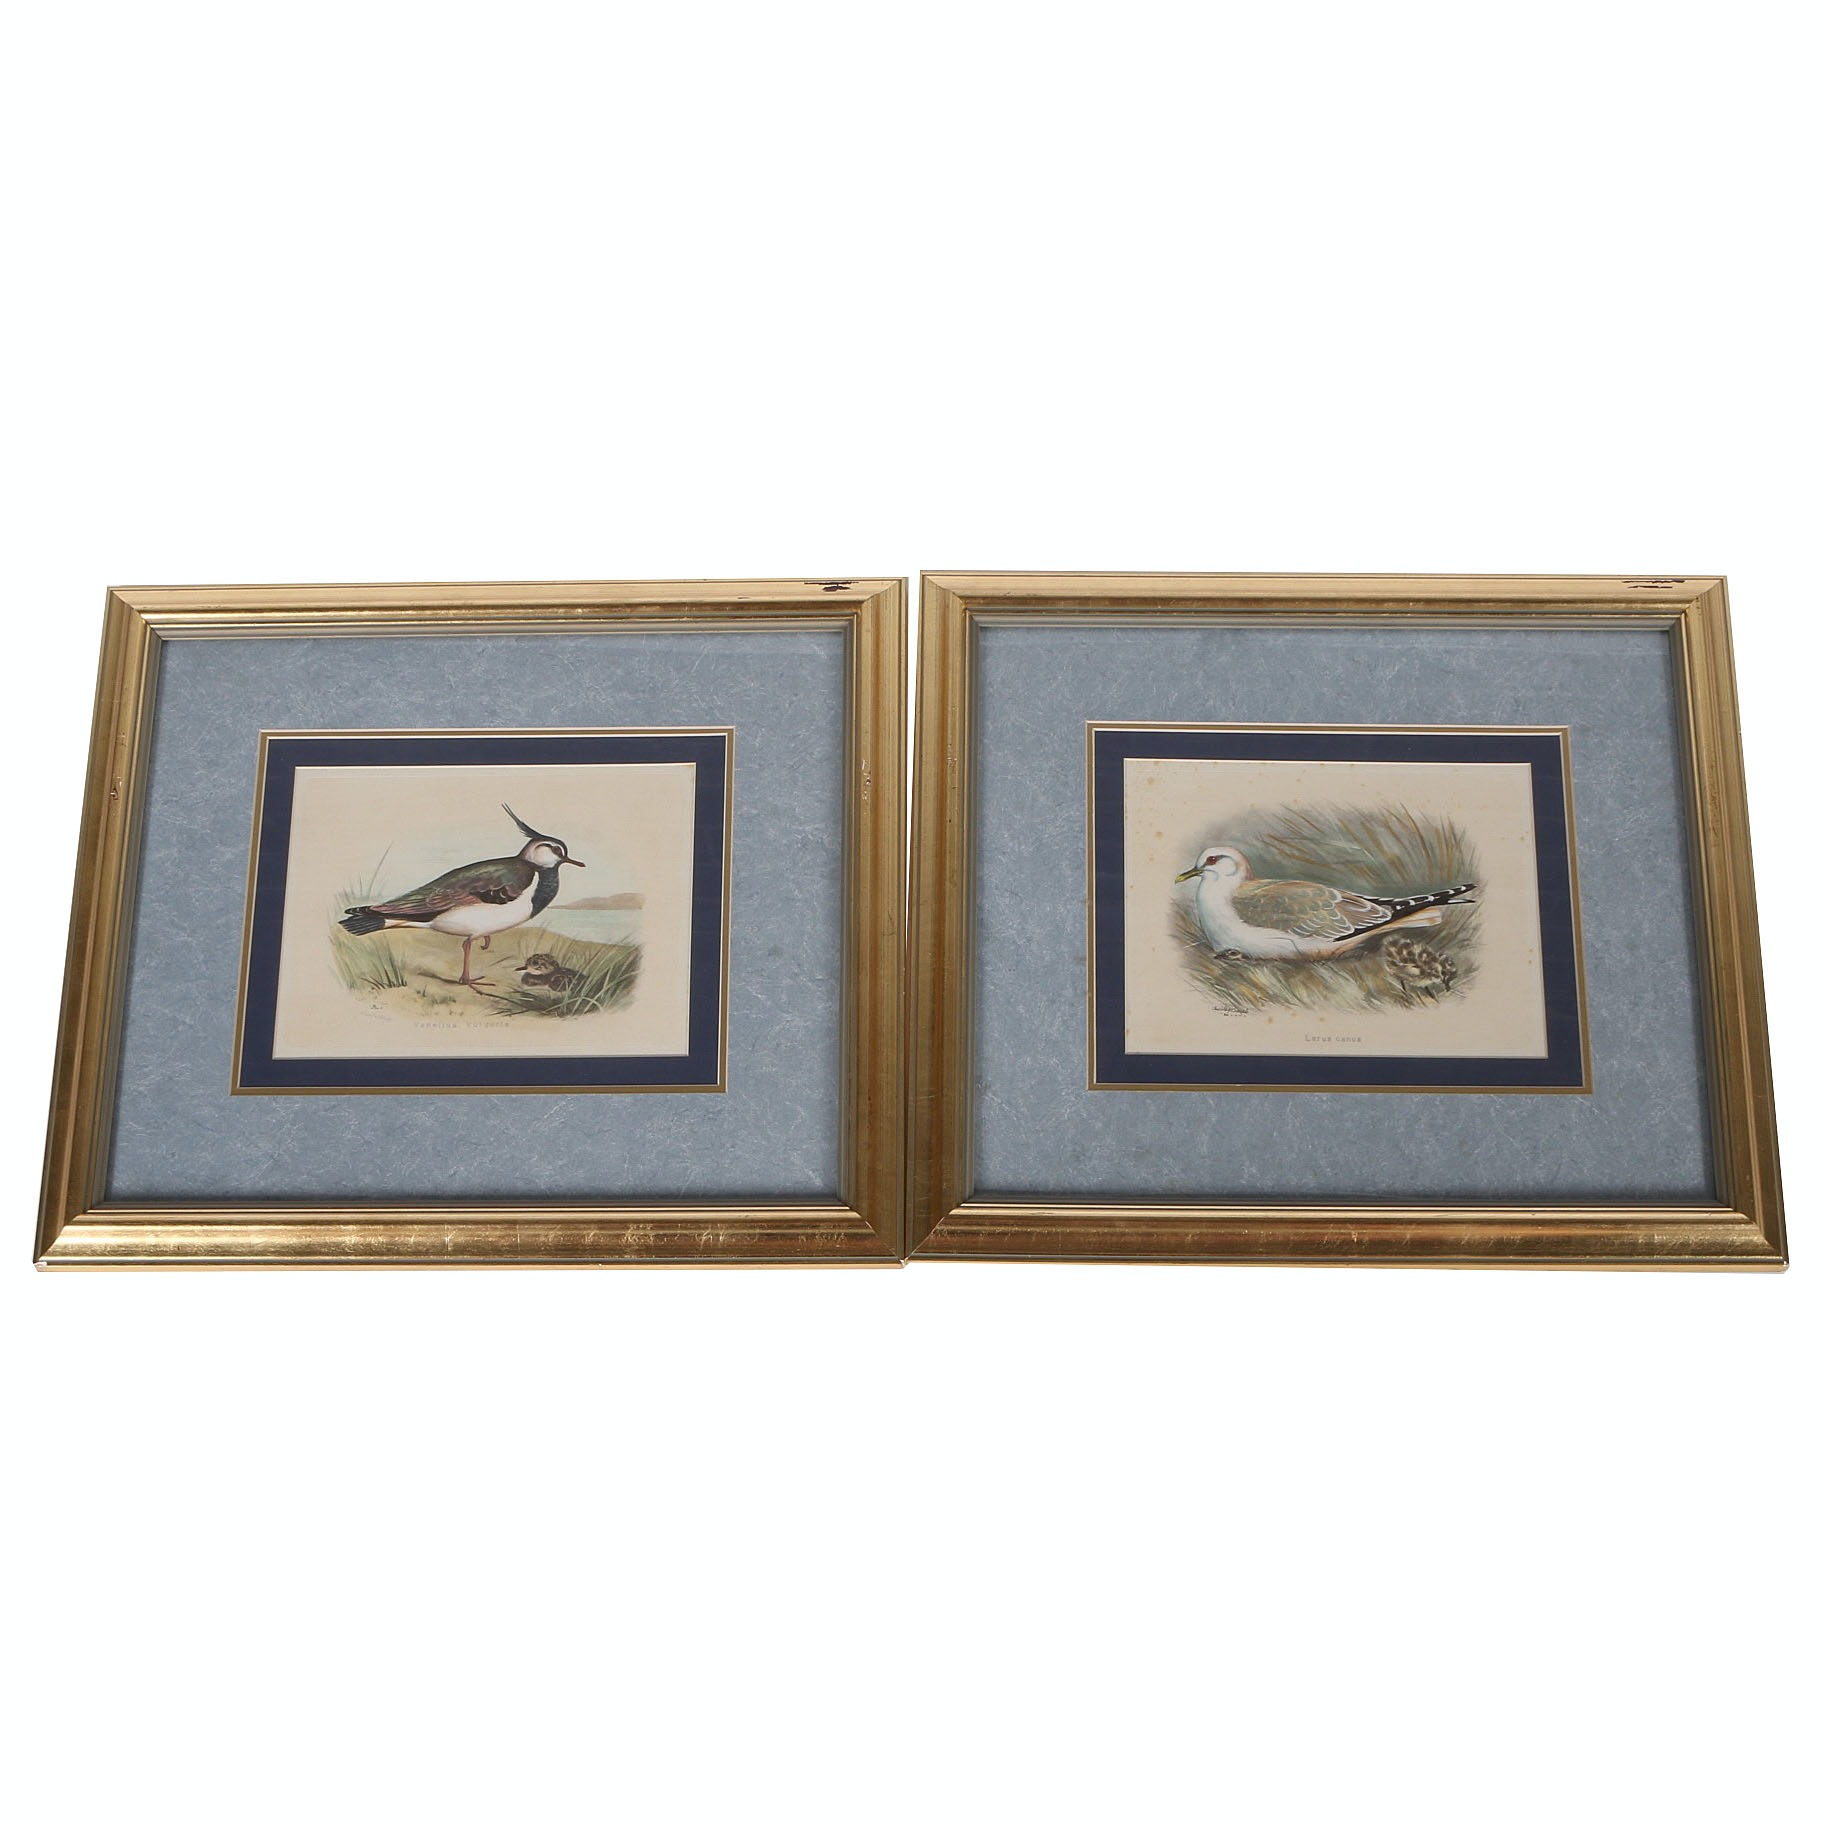 Prints of Seagull and Lapwing by Dilion Medland